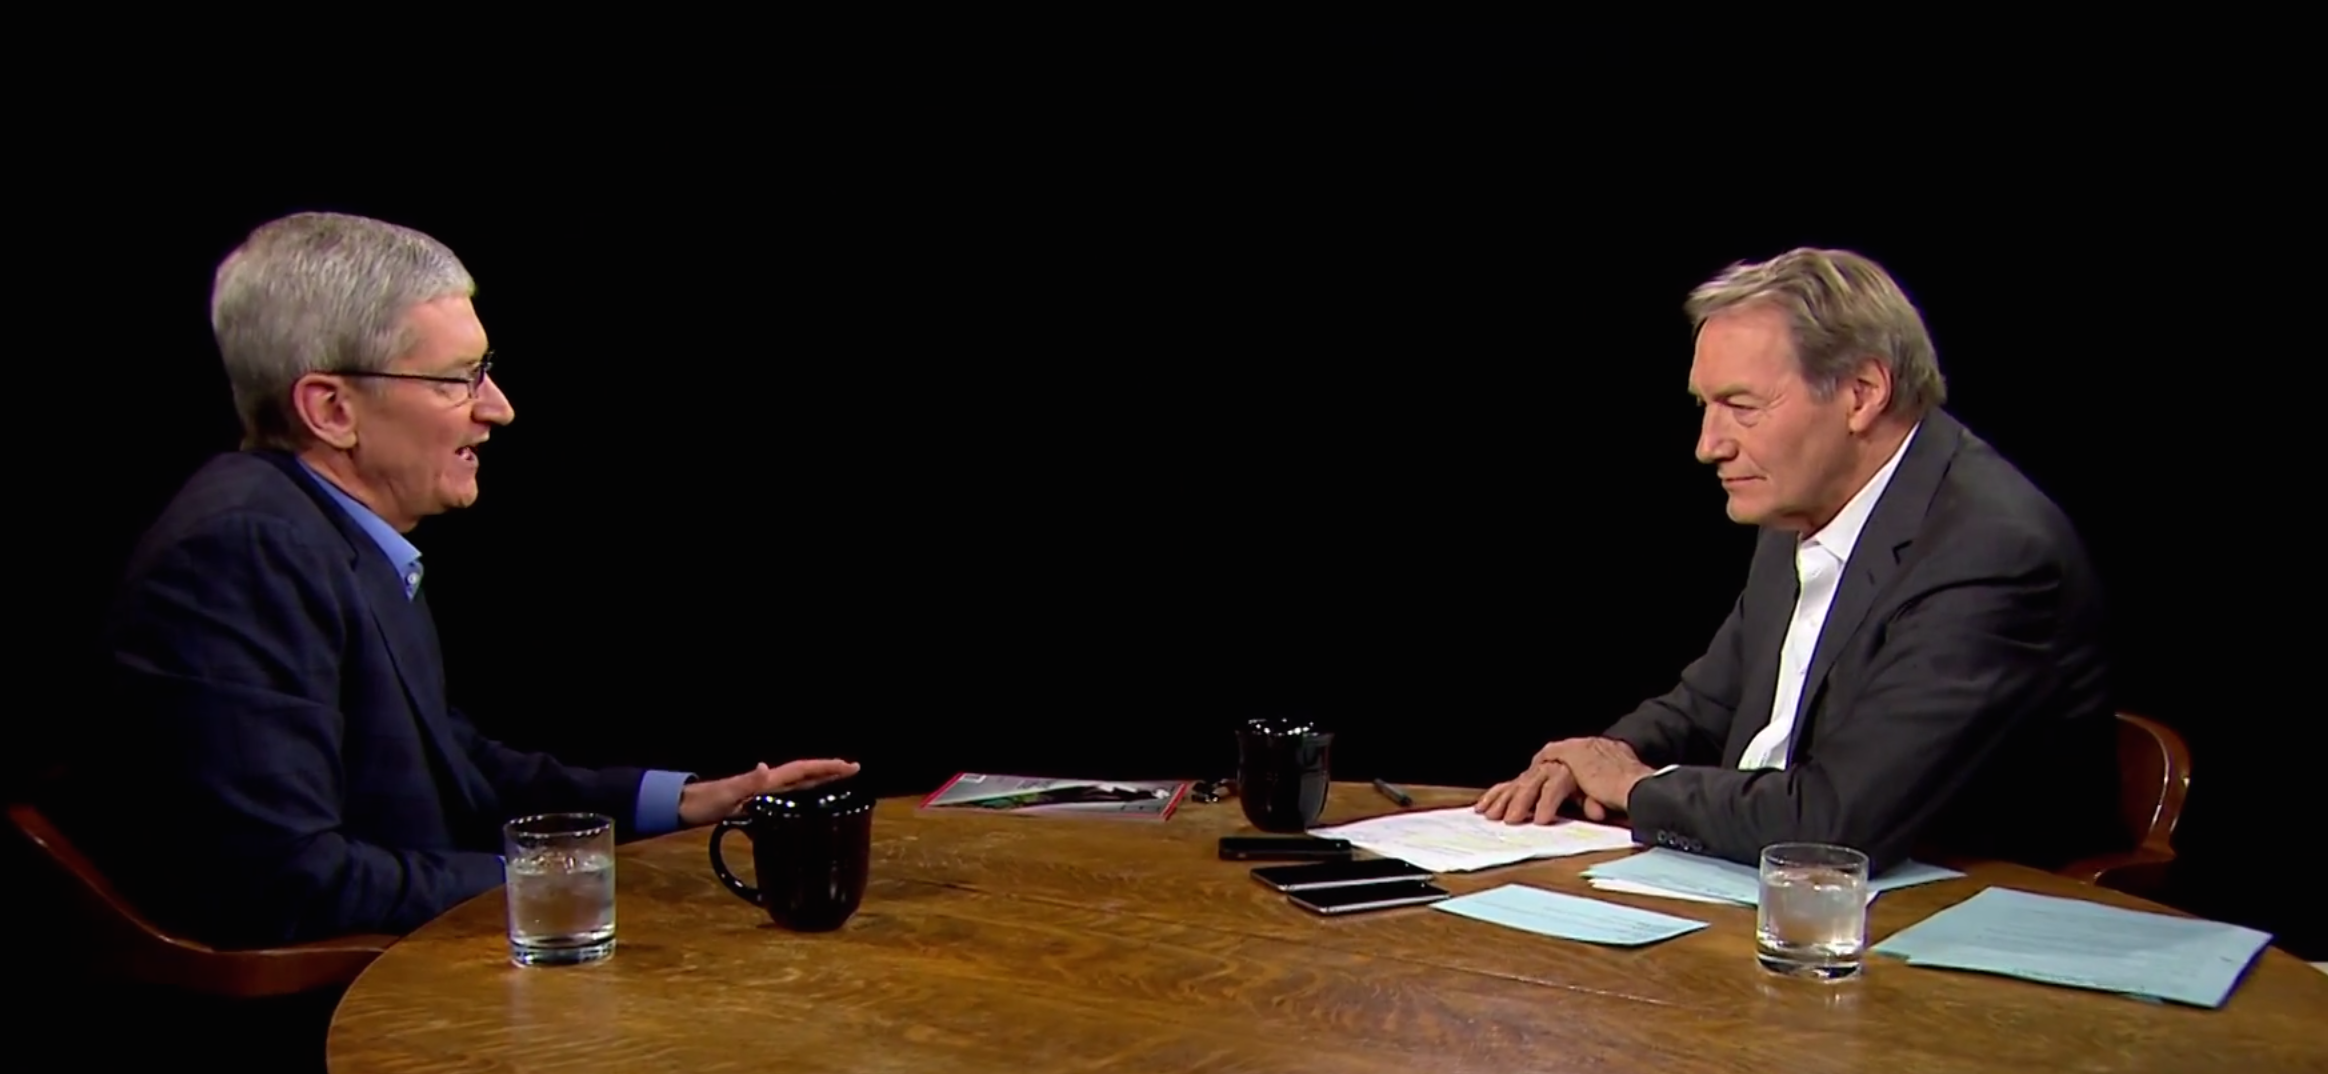 Apple's Tim Cook Talks TV and Steve Jobs with Charlie Rose